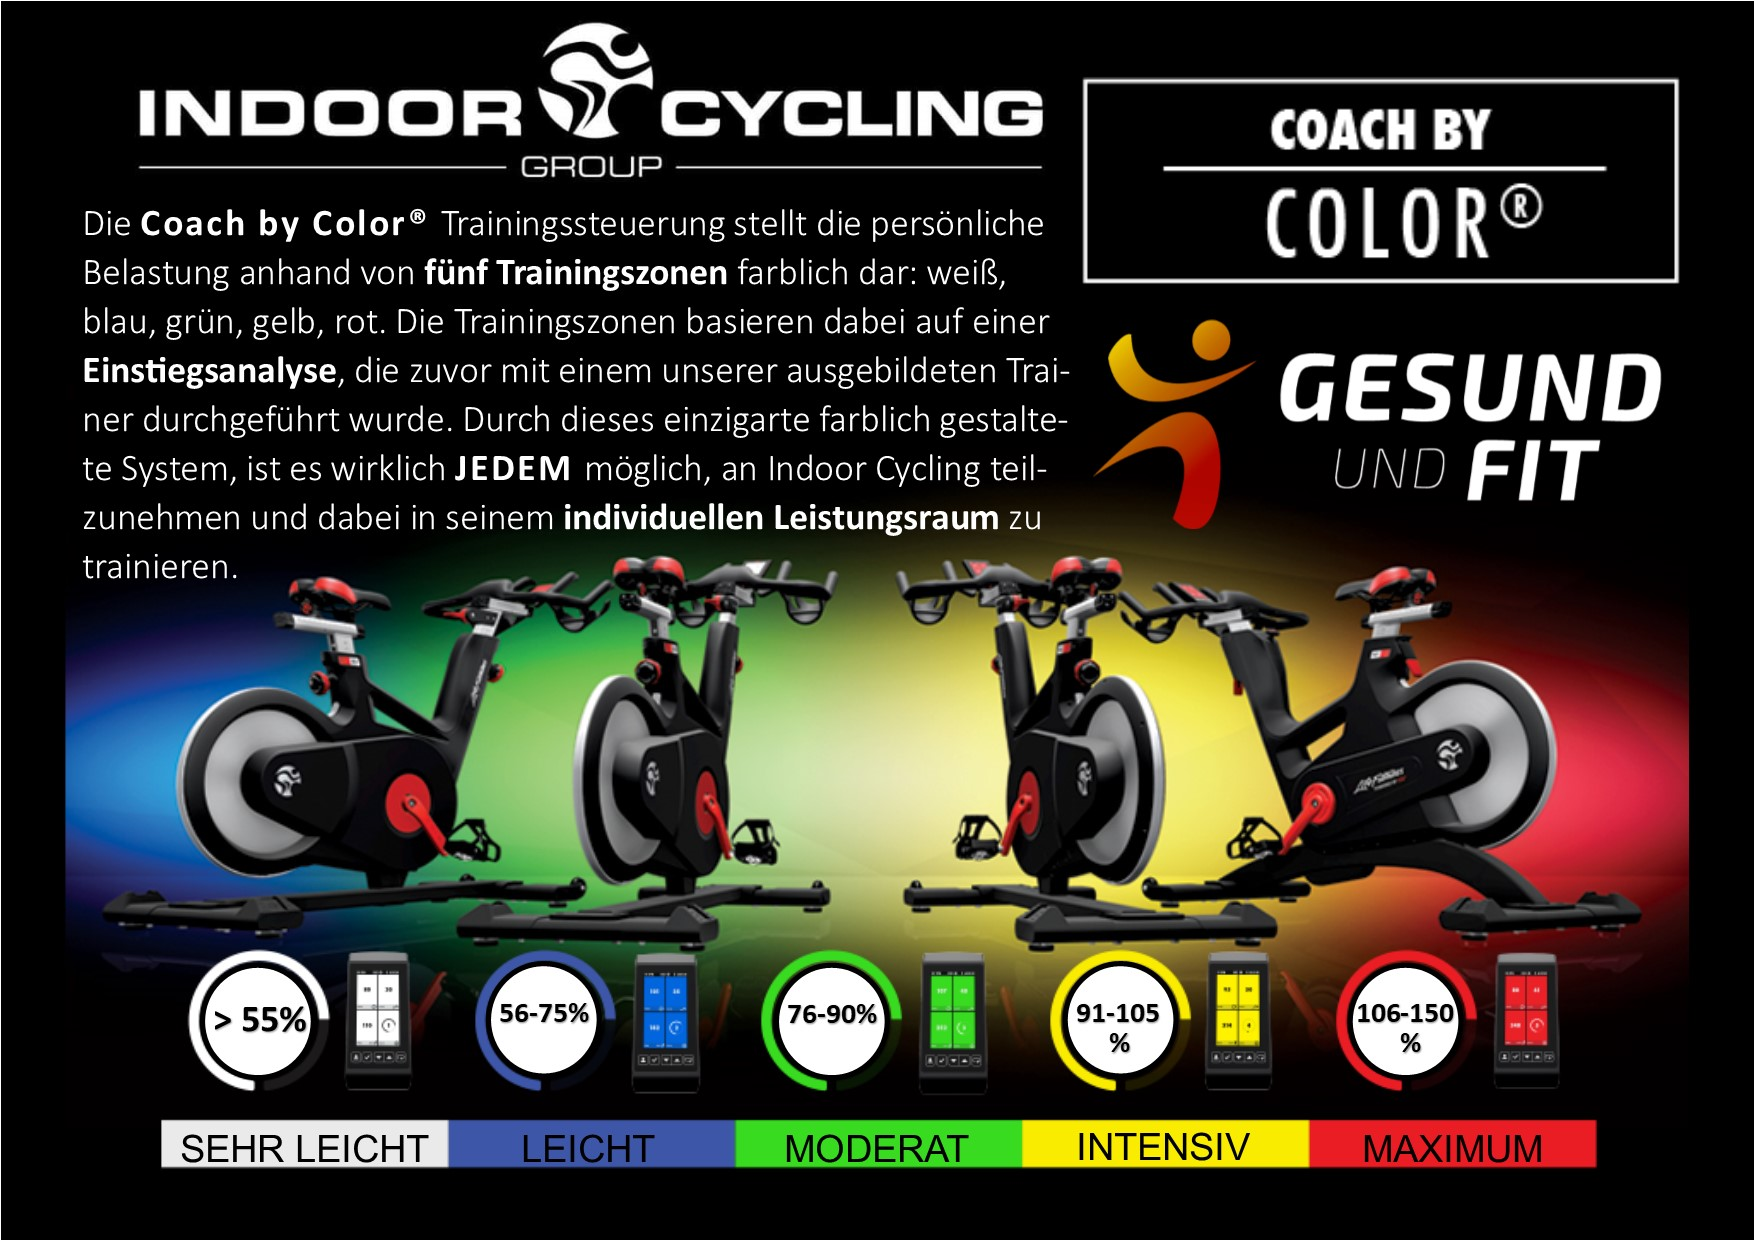 IC-coach-by-color-Info